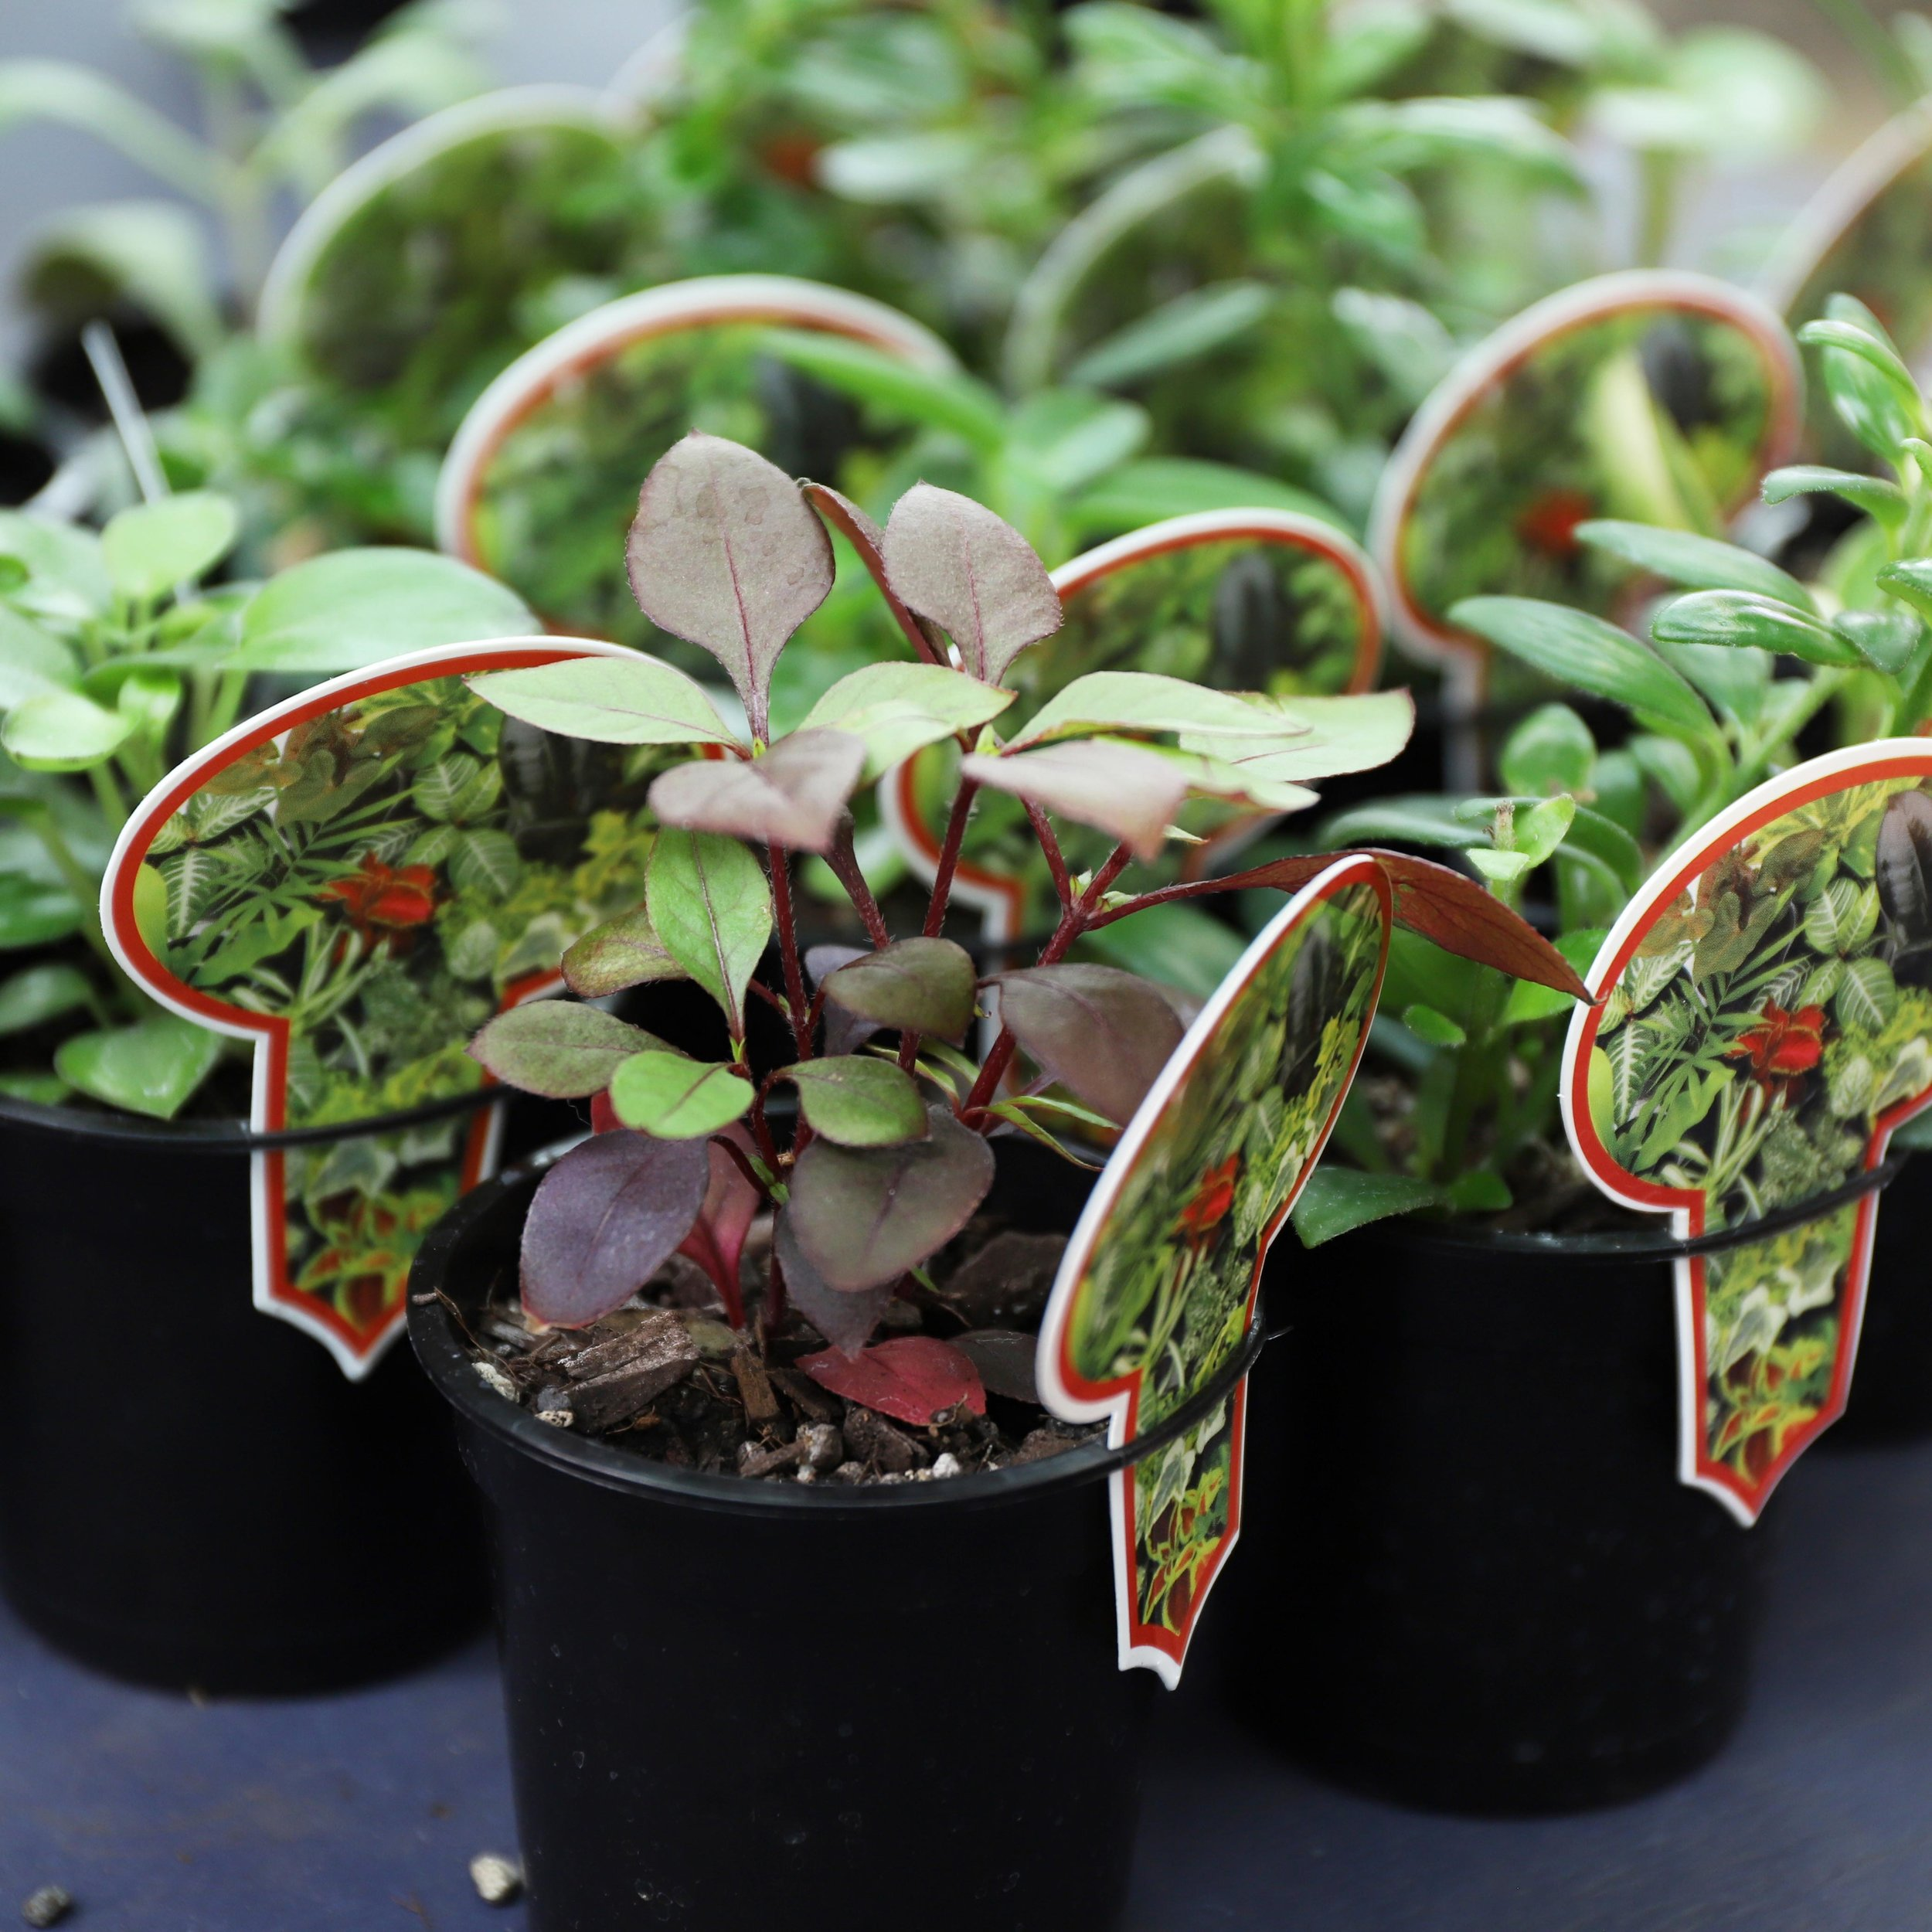 Baby House Plants3 for $12 -